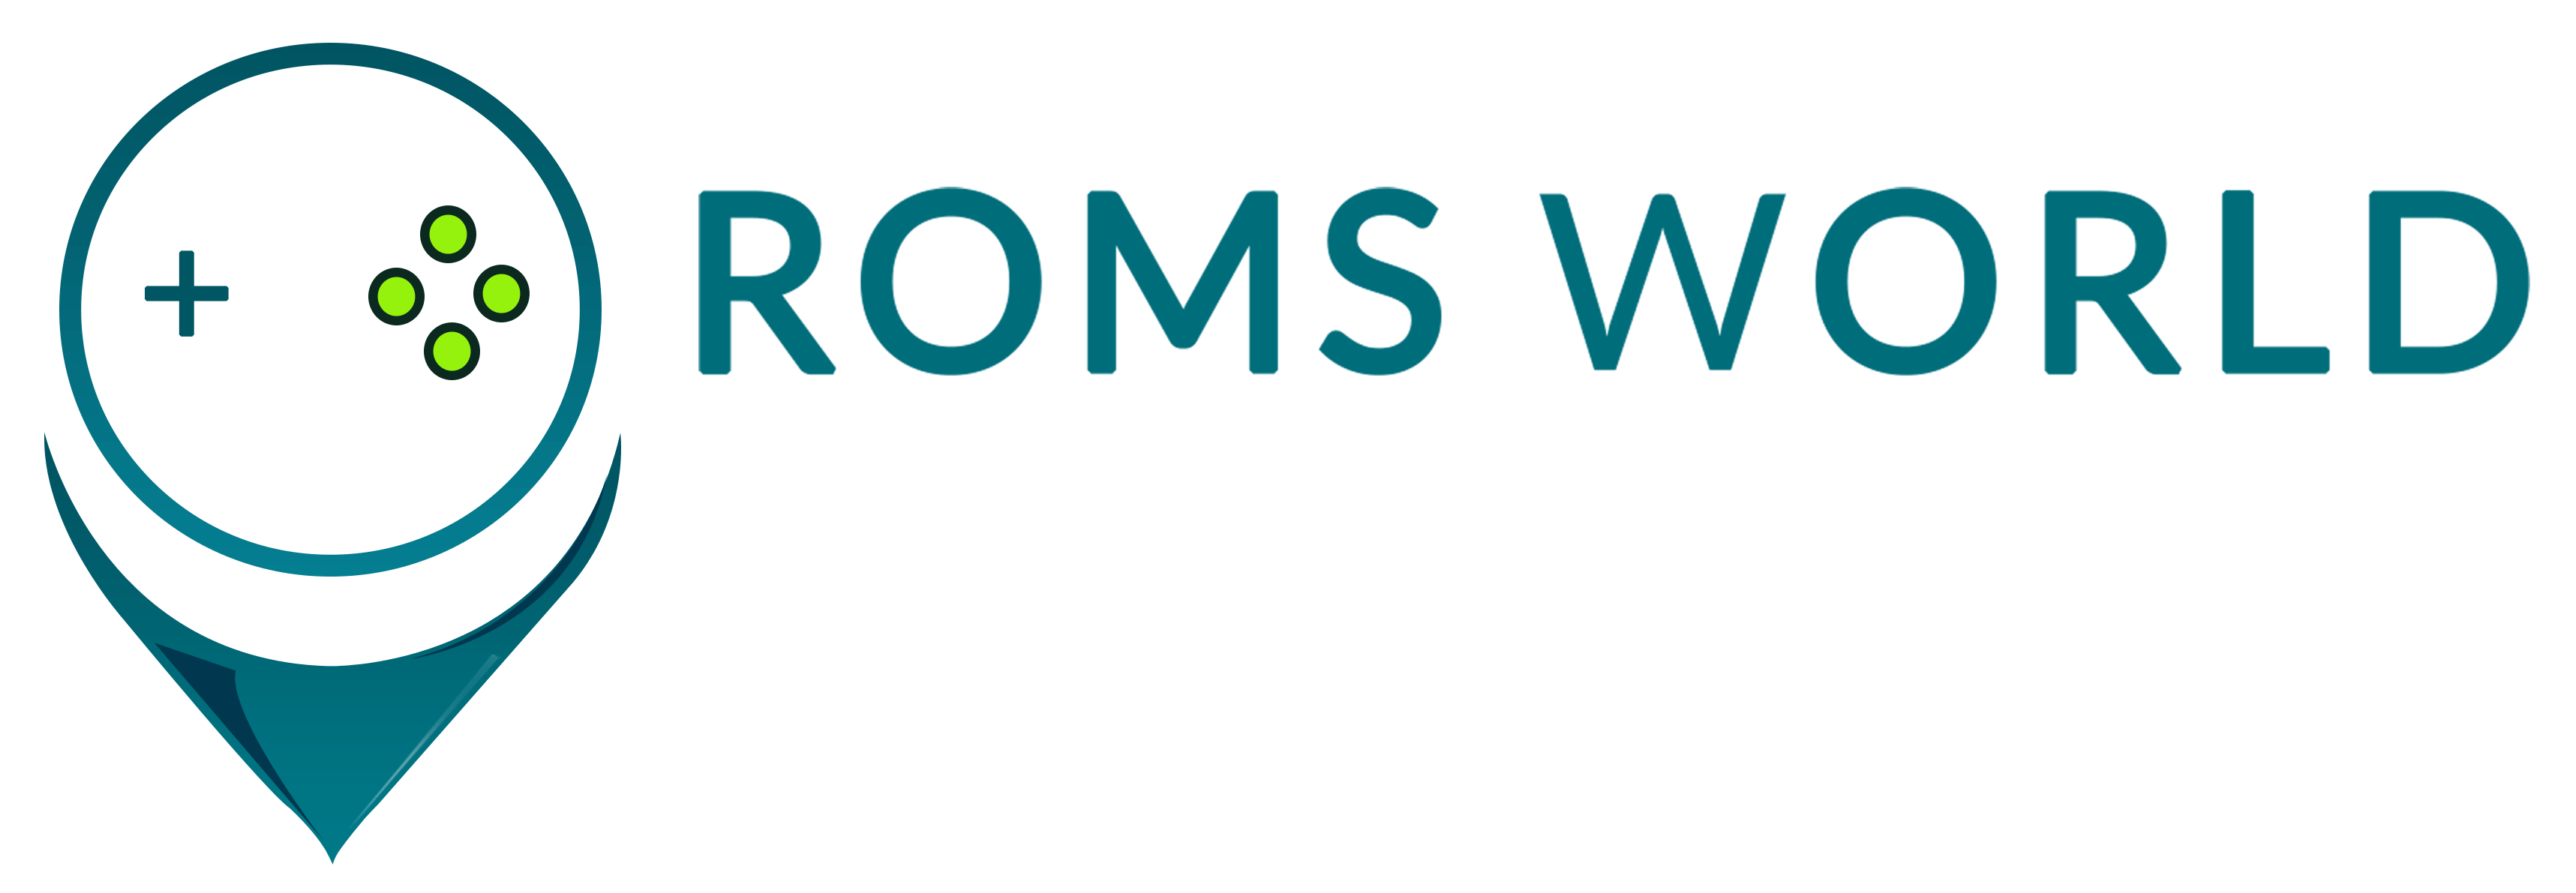 Get Chrono Trigger download Online | Roms World